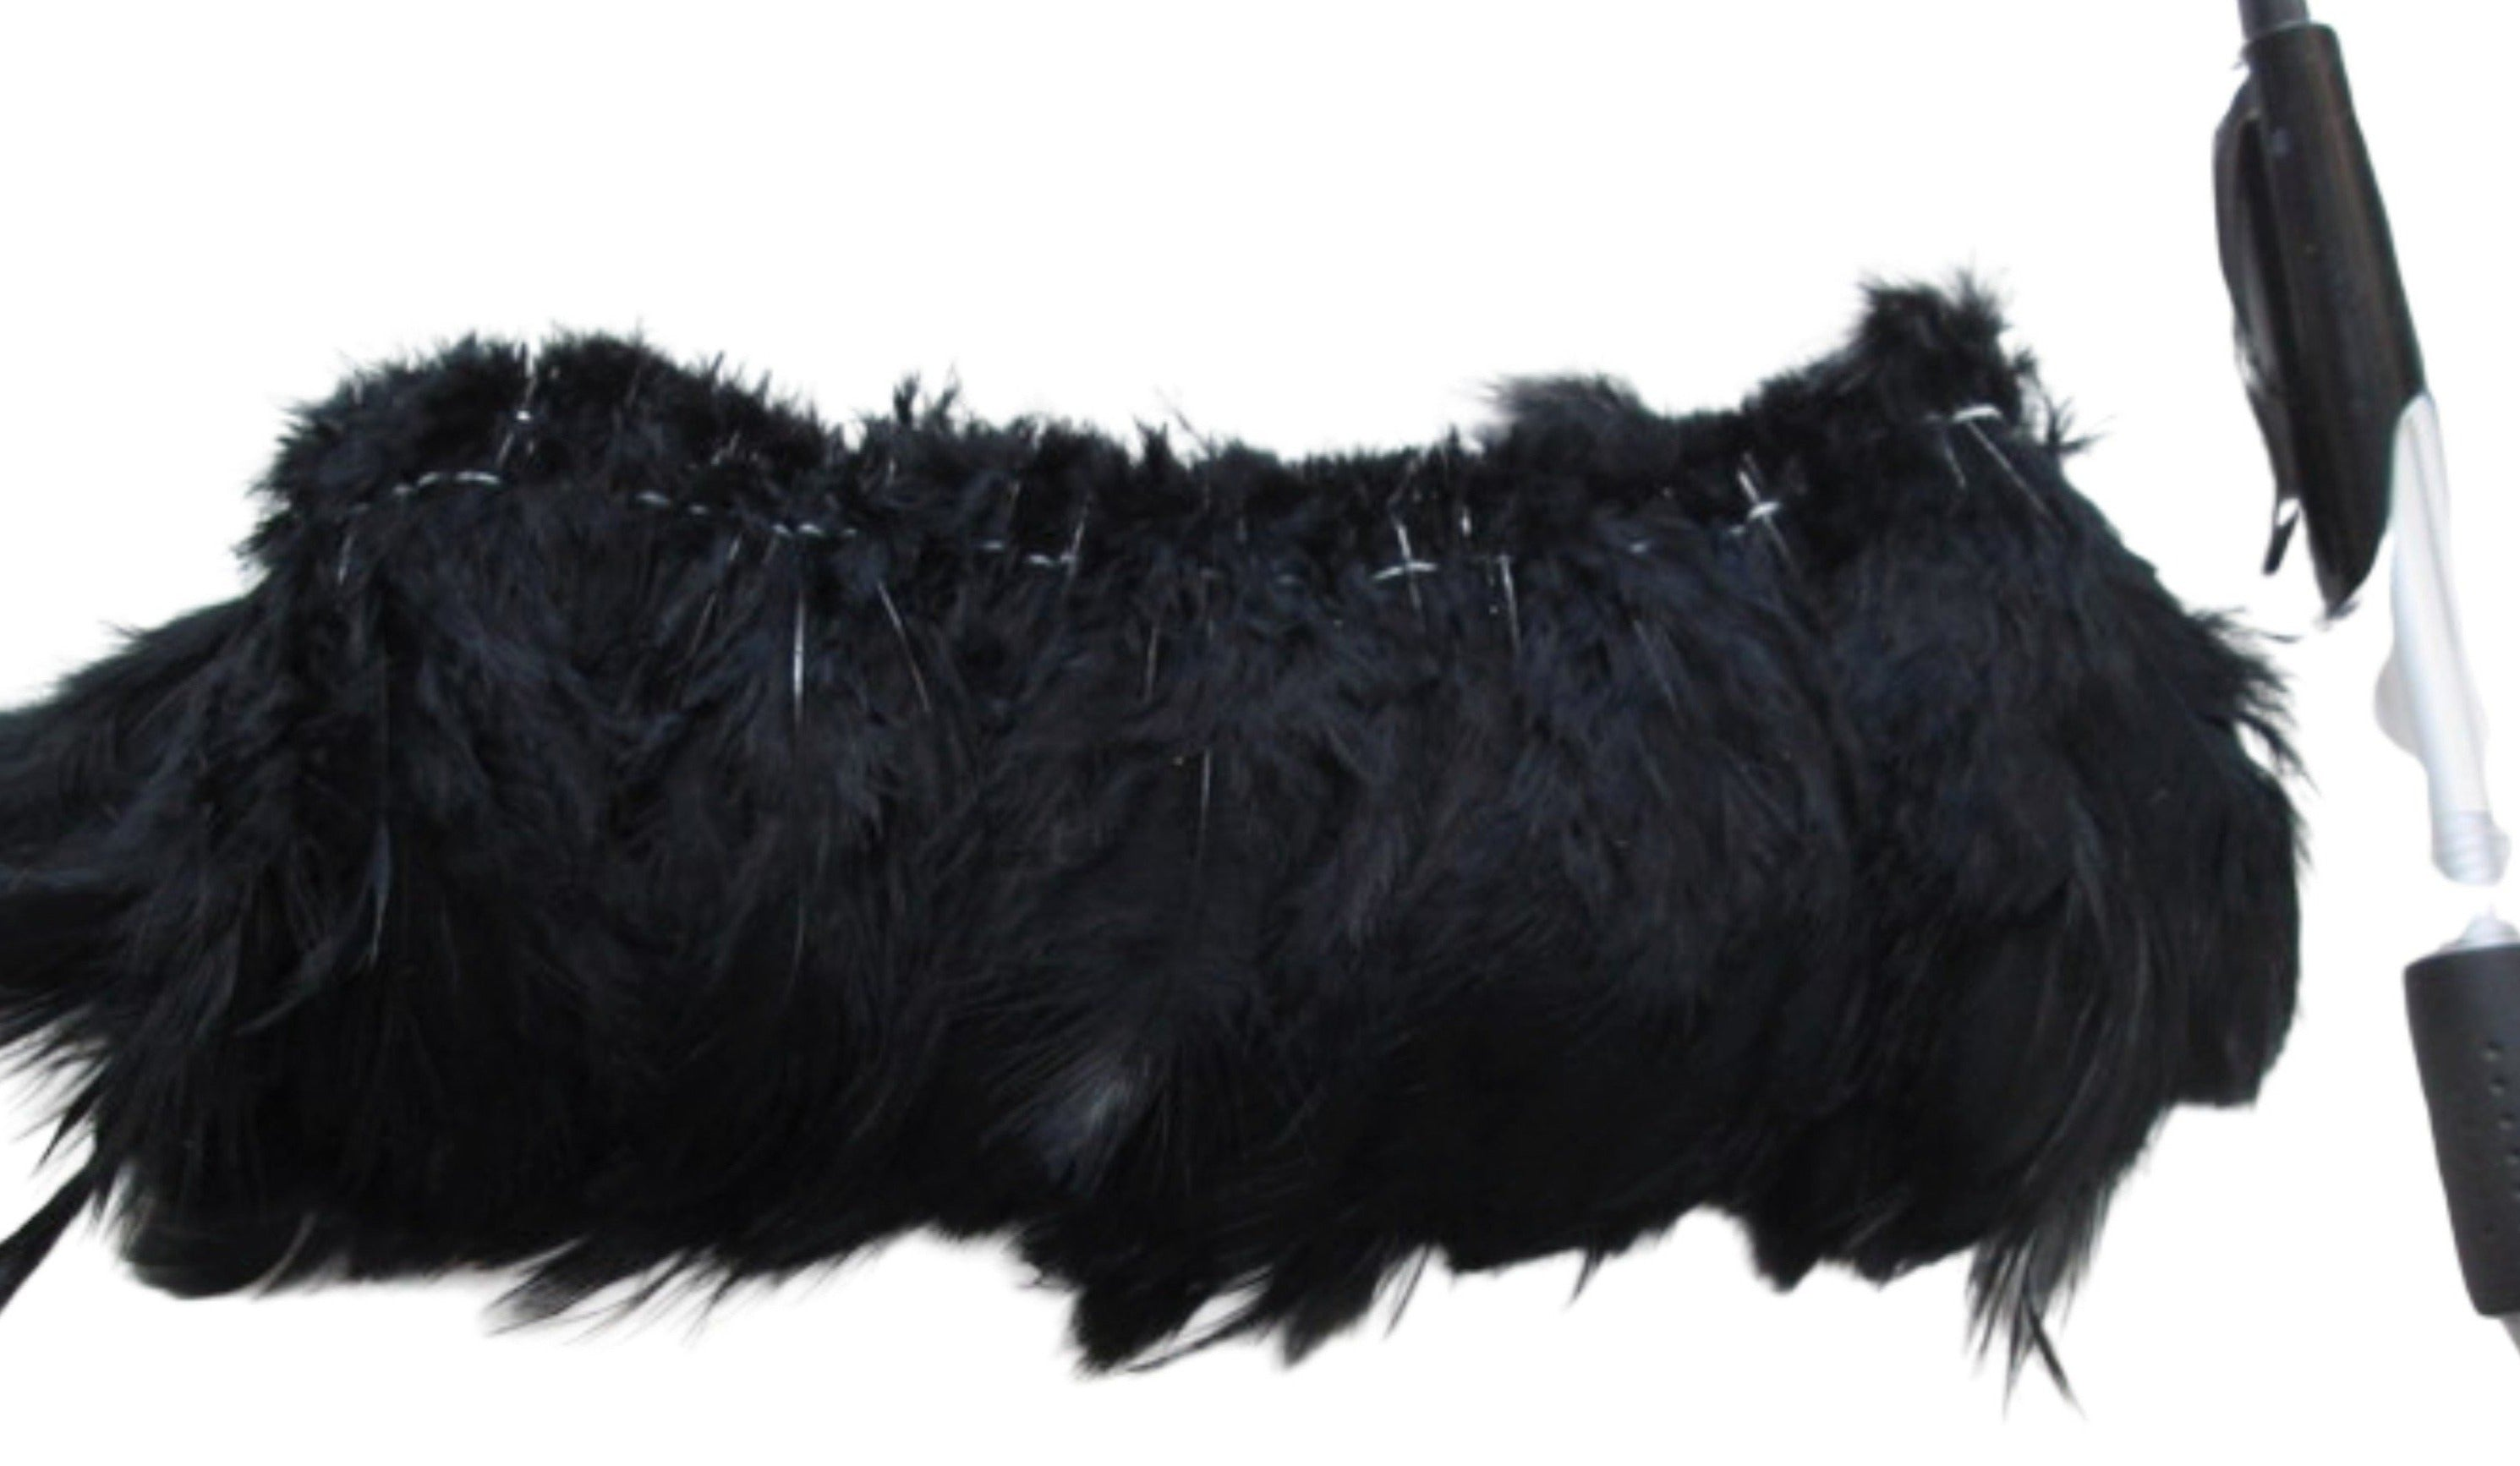 Black rooster feathers, Strung